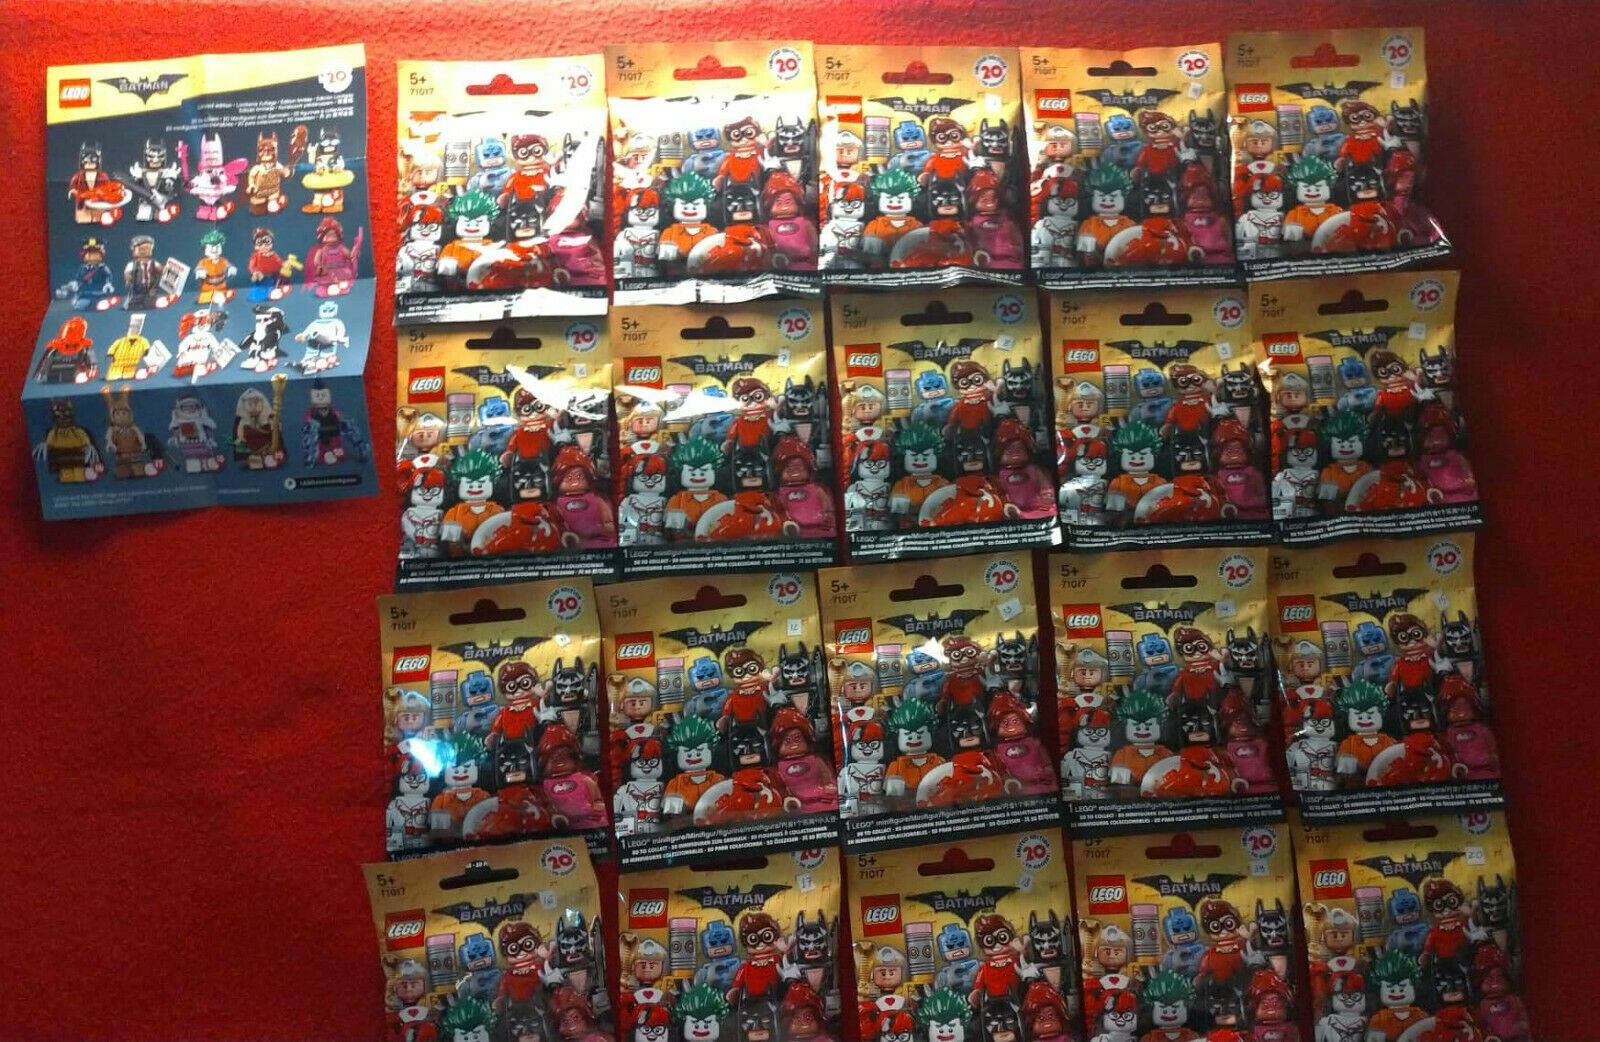 Lego Batman Movie Series 71017 Full Complet Set of 20 Minifigures - New   Sealed